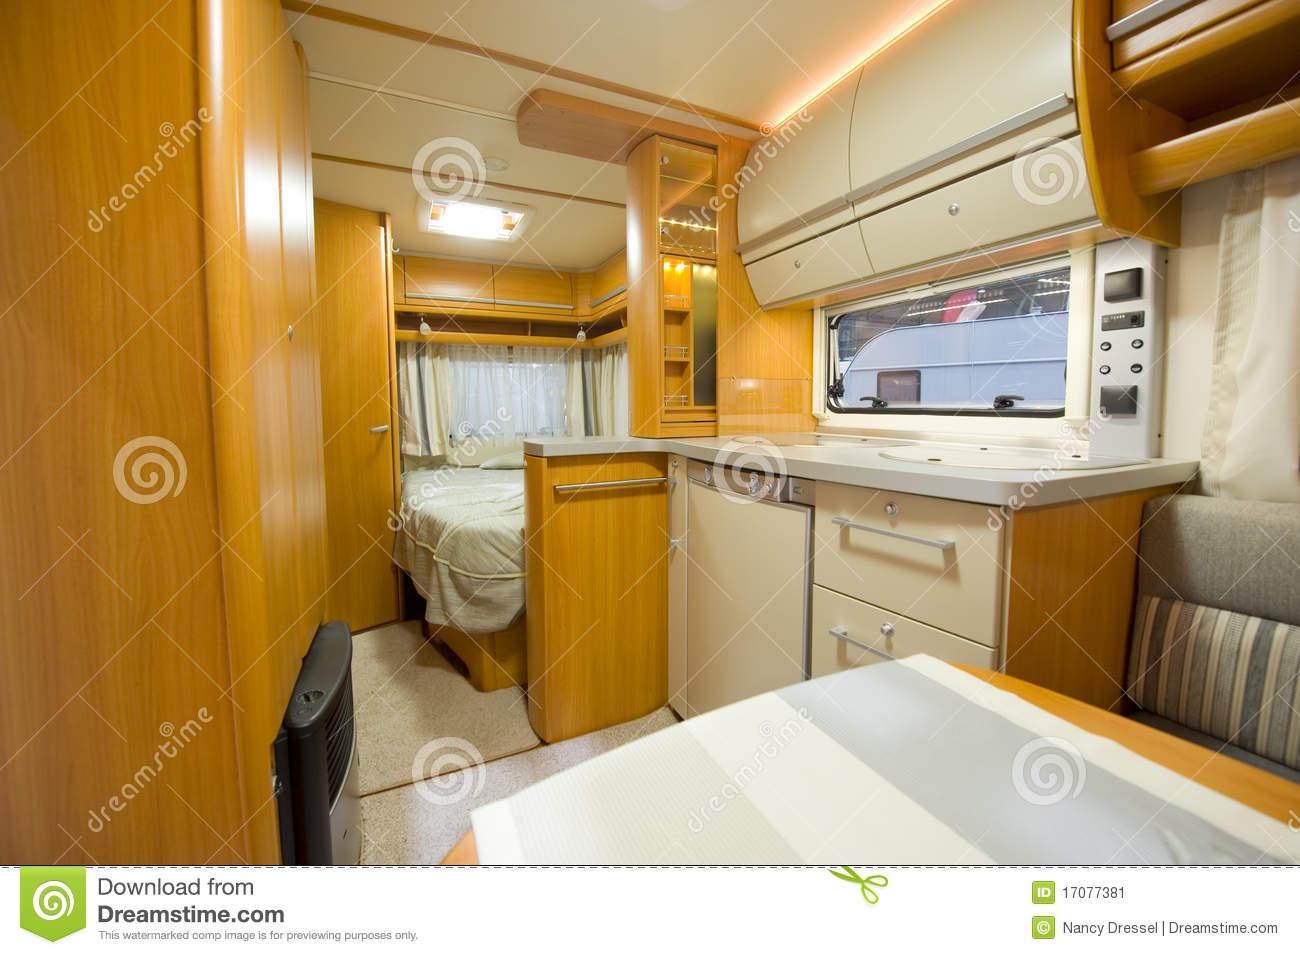 Decoration Interieur Camping Car Inside Motor Home Detail Stock Image. Image Of Chair